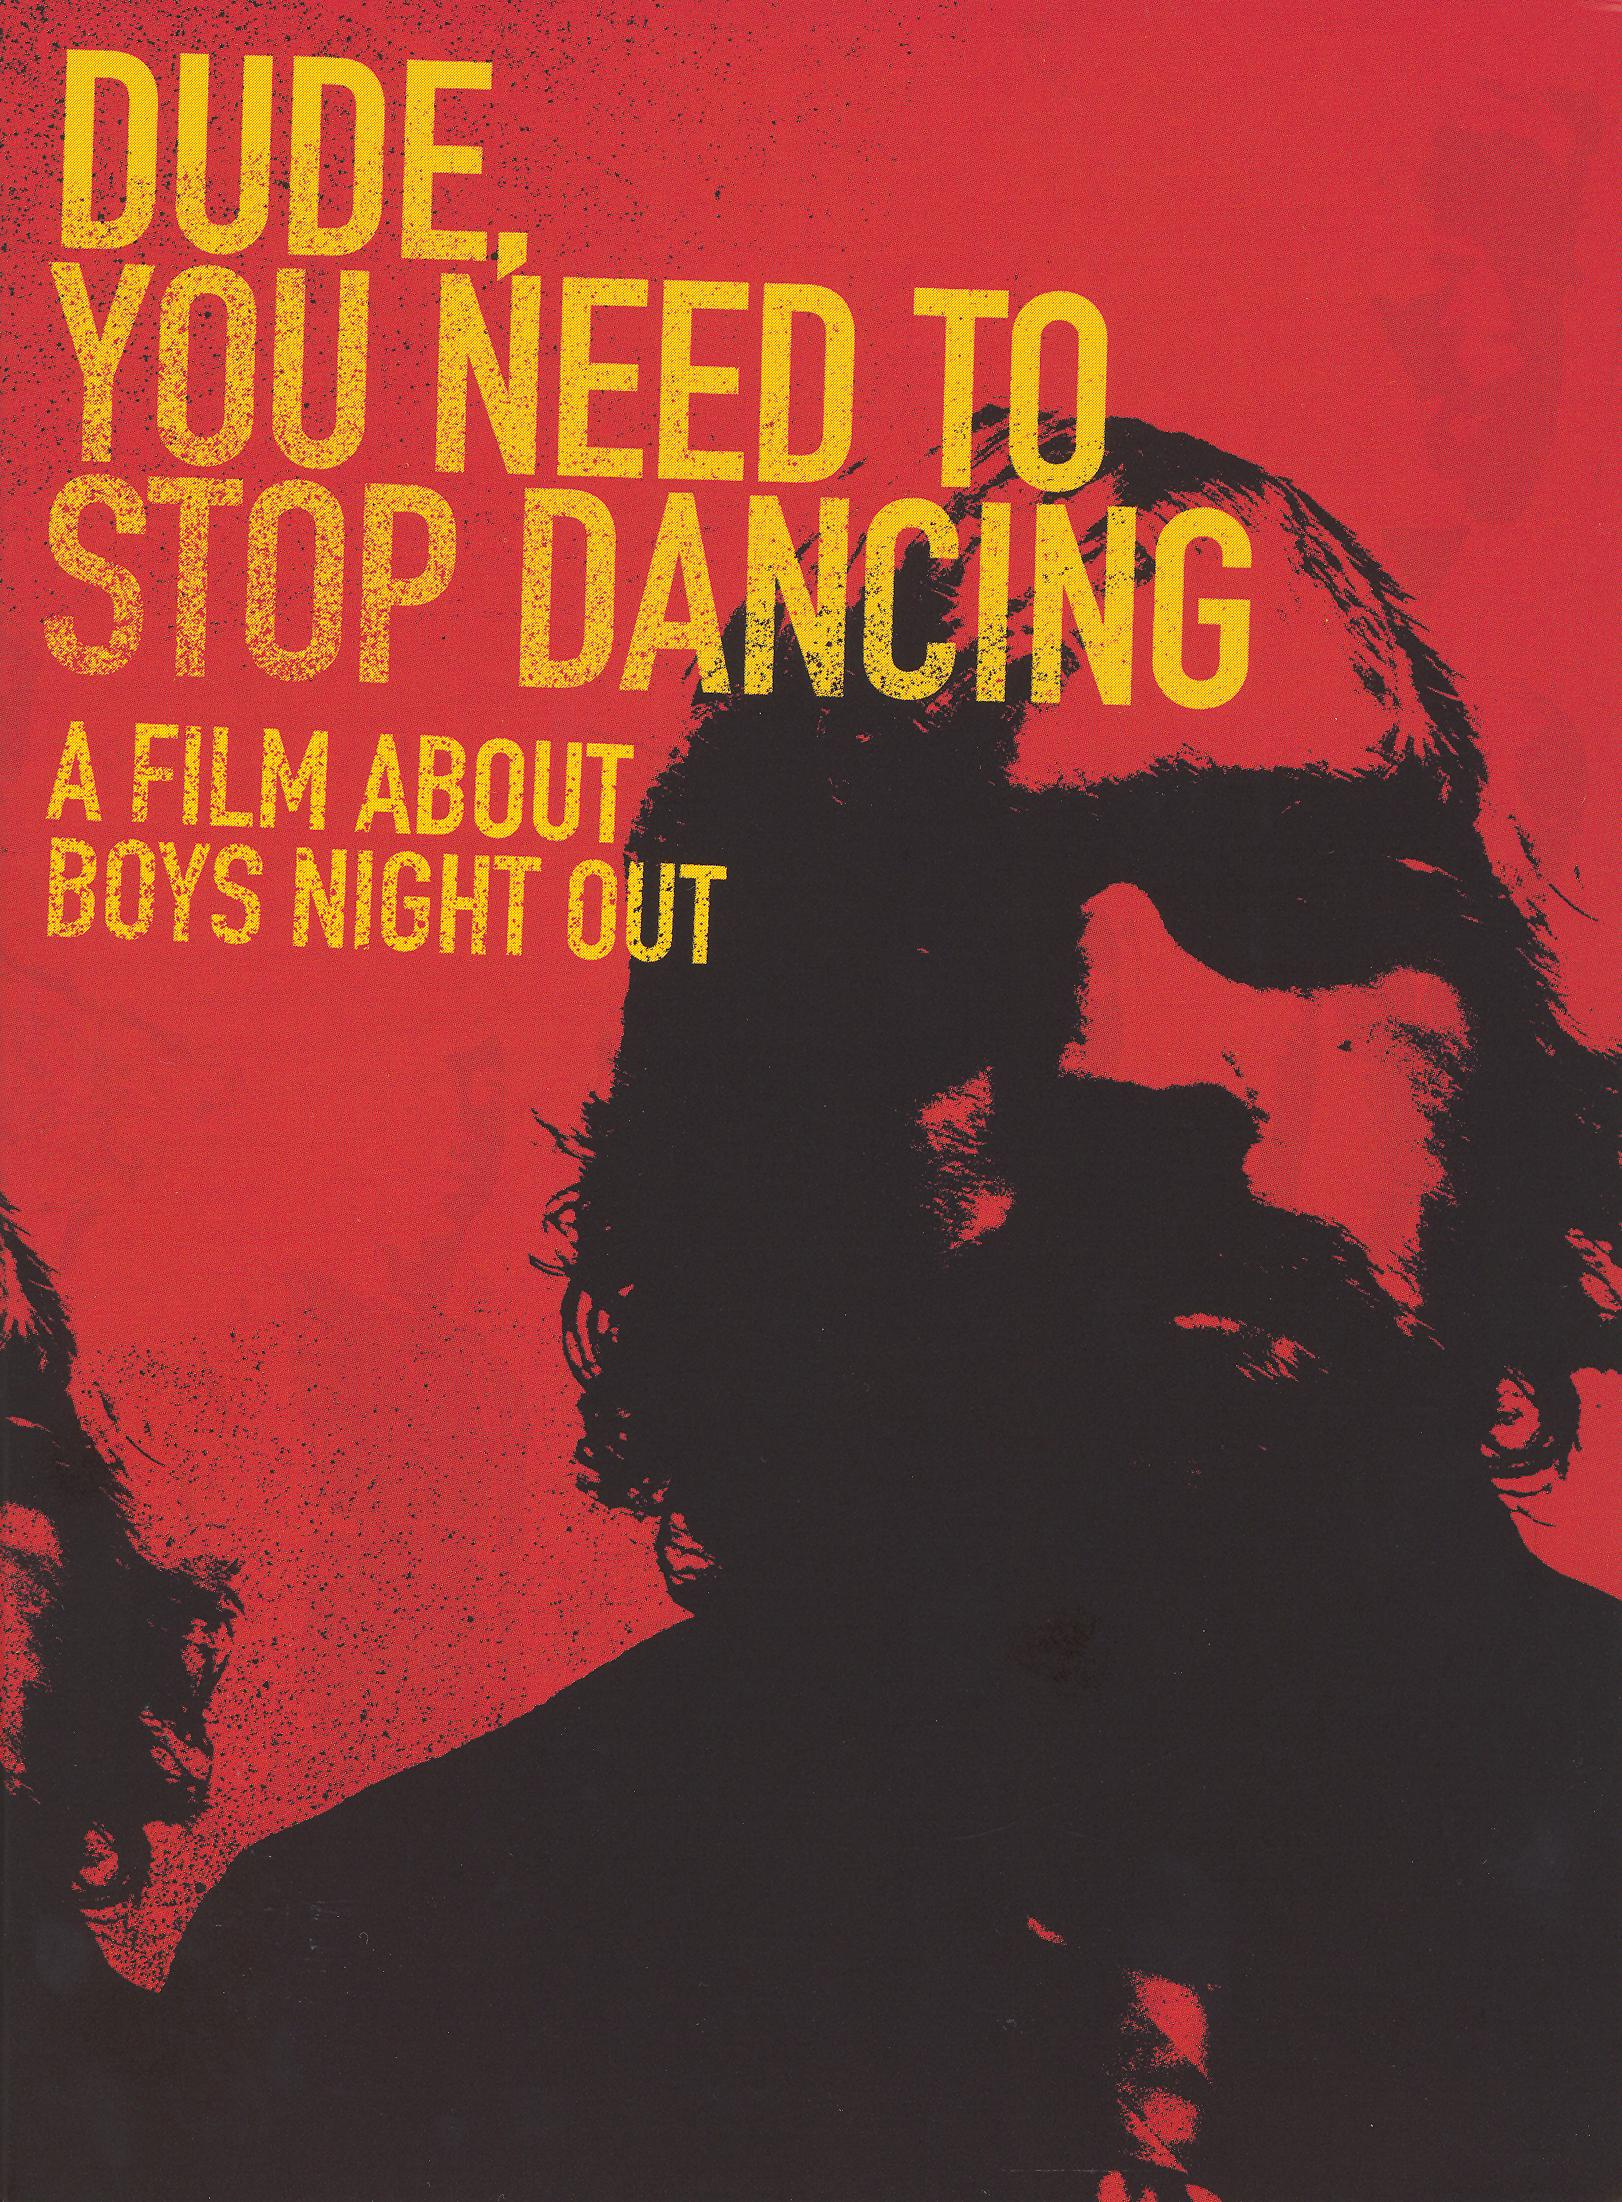 Boys Night Out: Dude, You Need to Stop Dancing